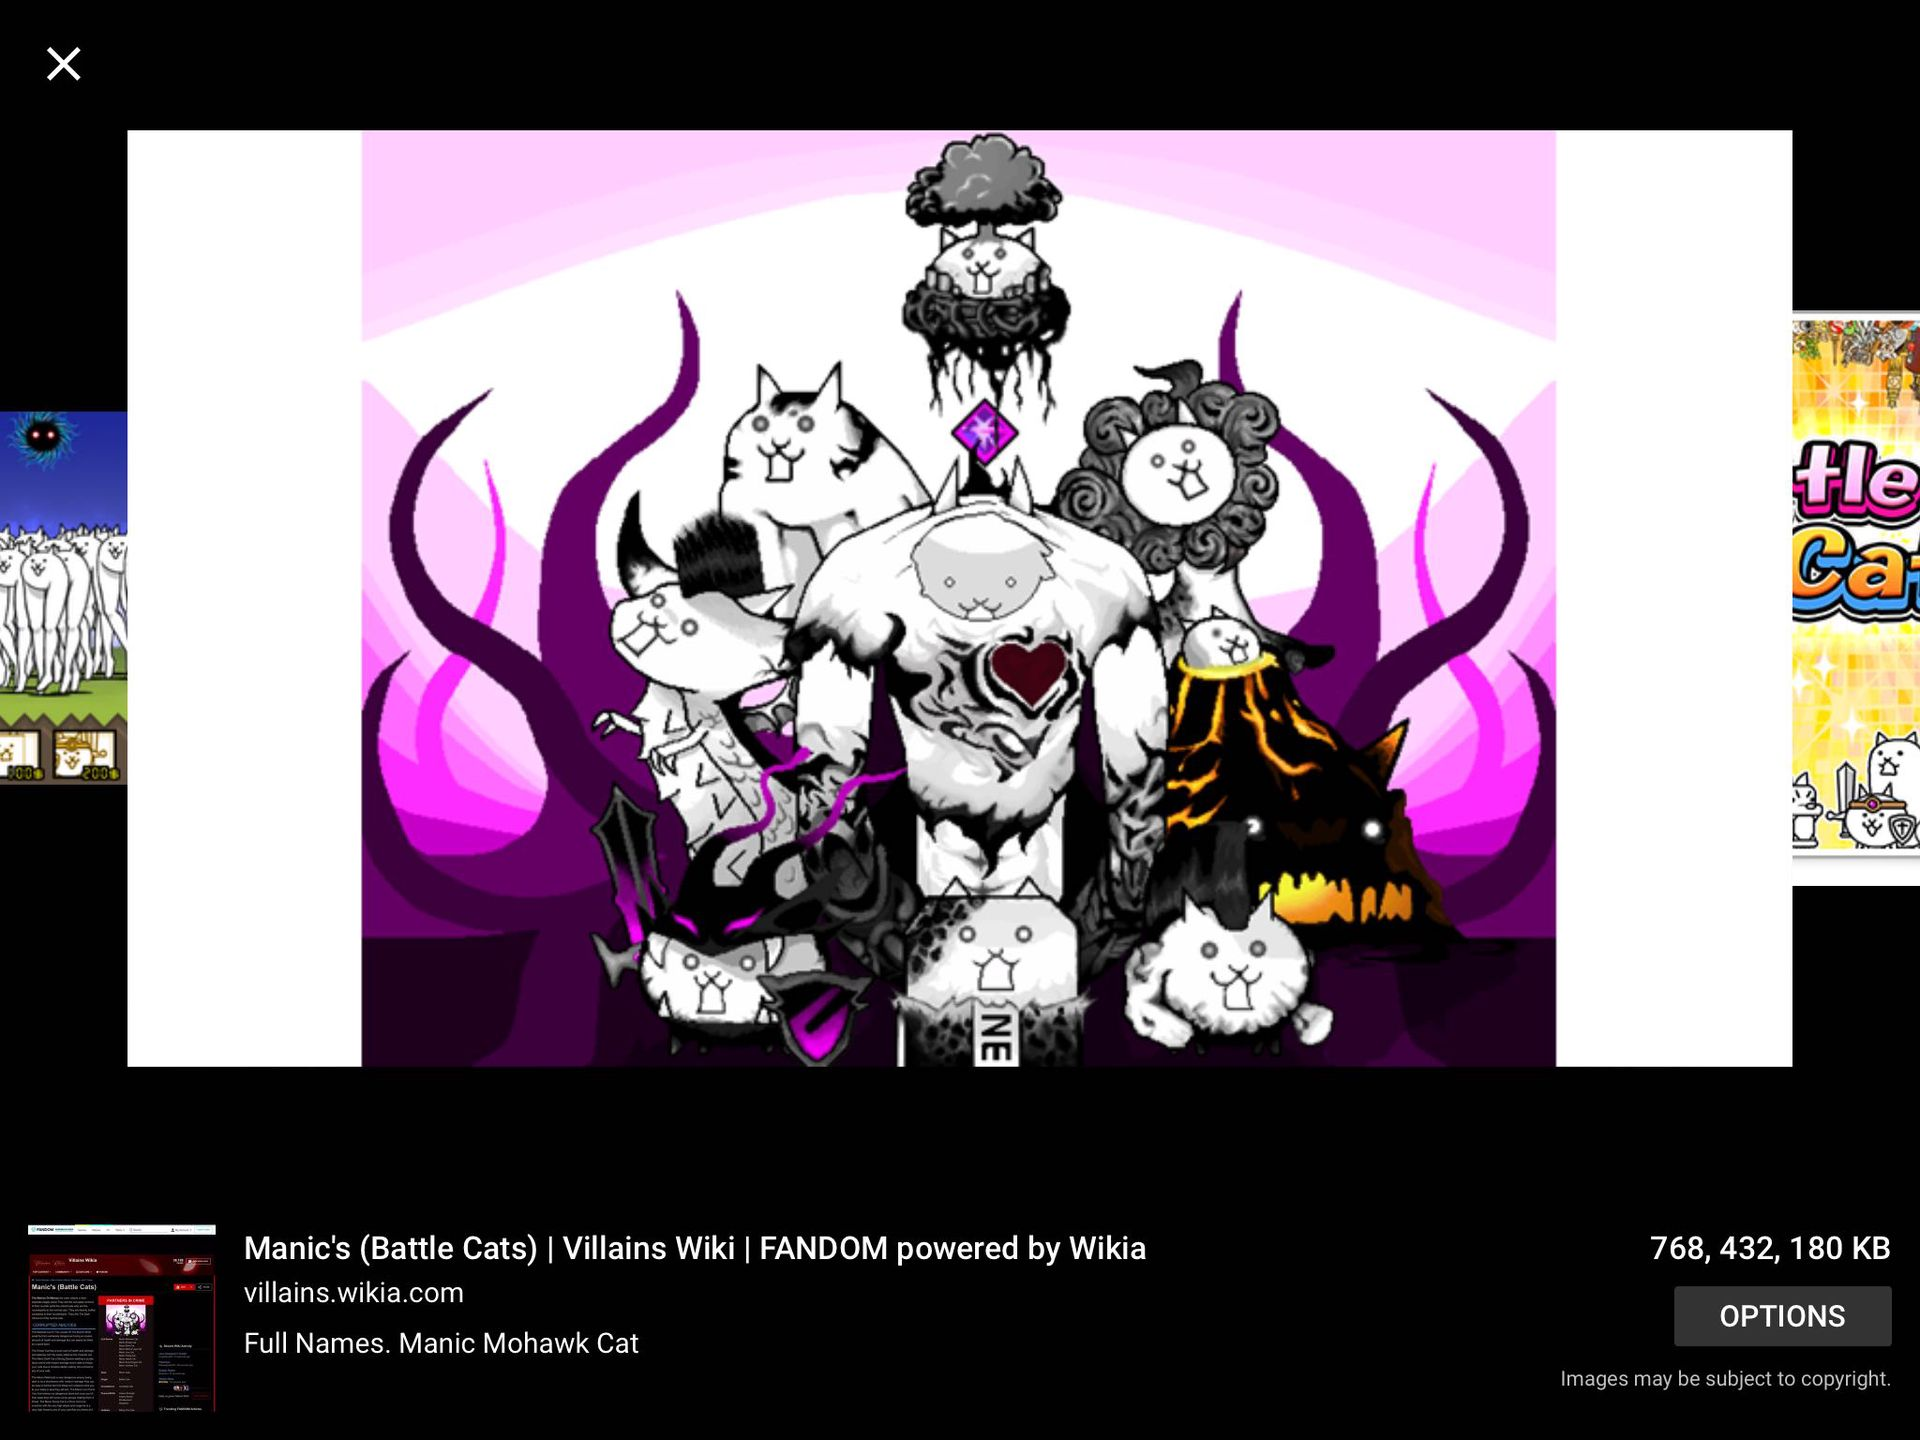 Battle Cats: The Animated Series - Next next and im done - Wattpad